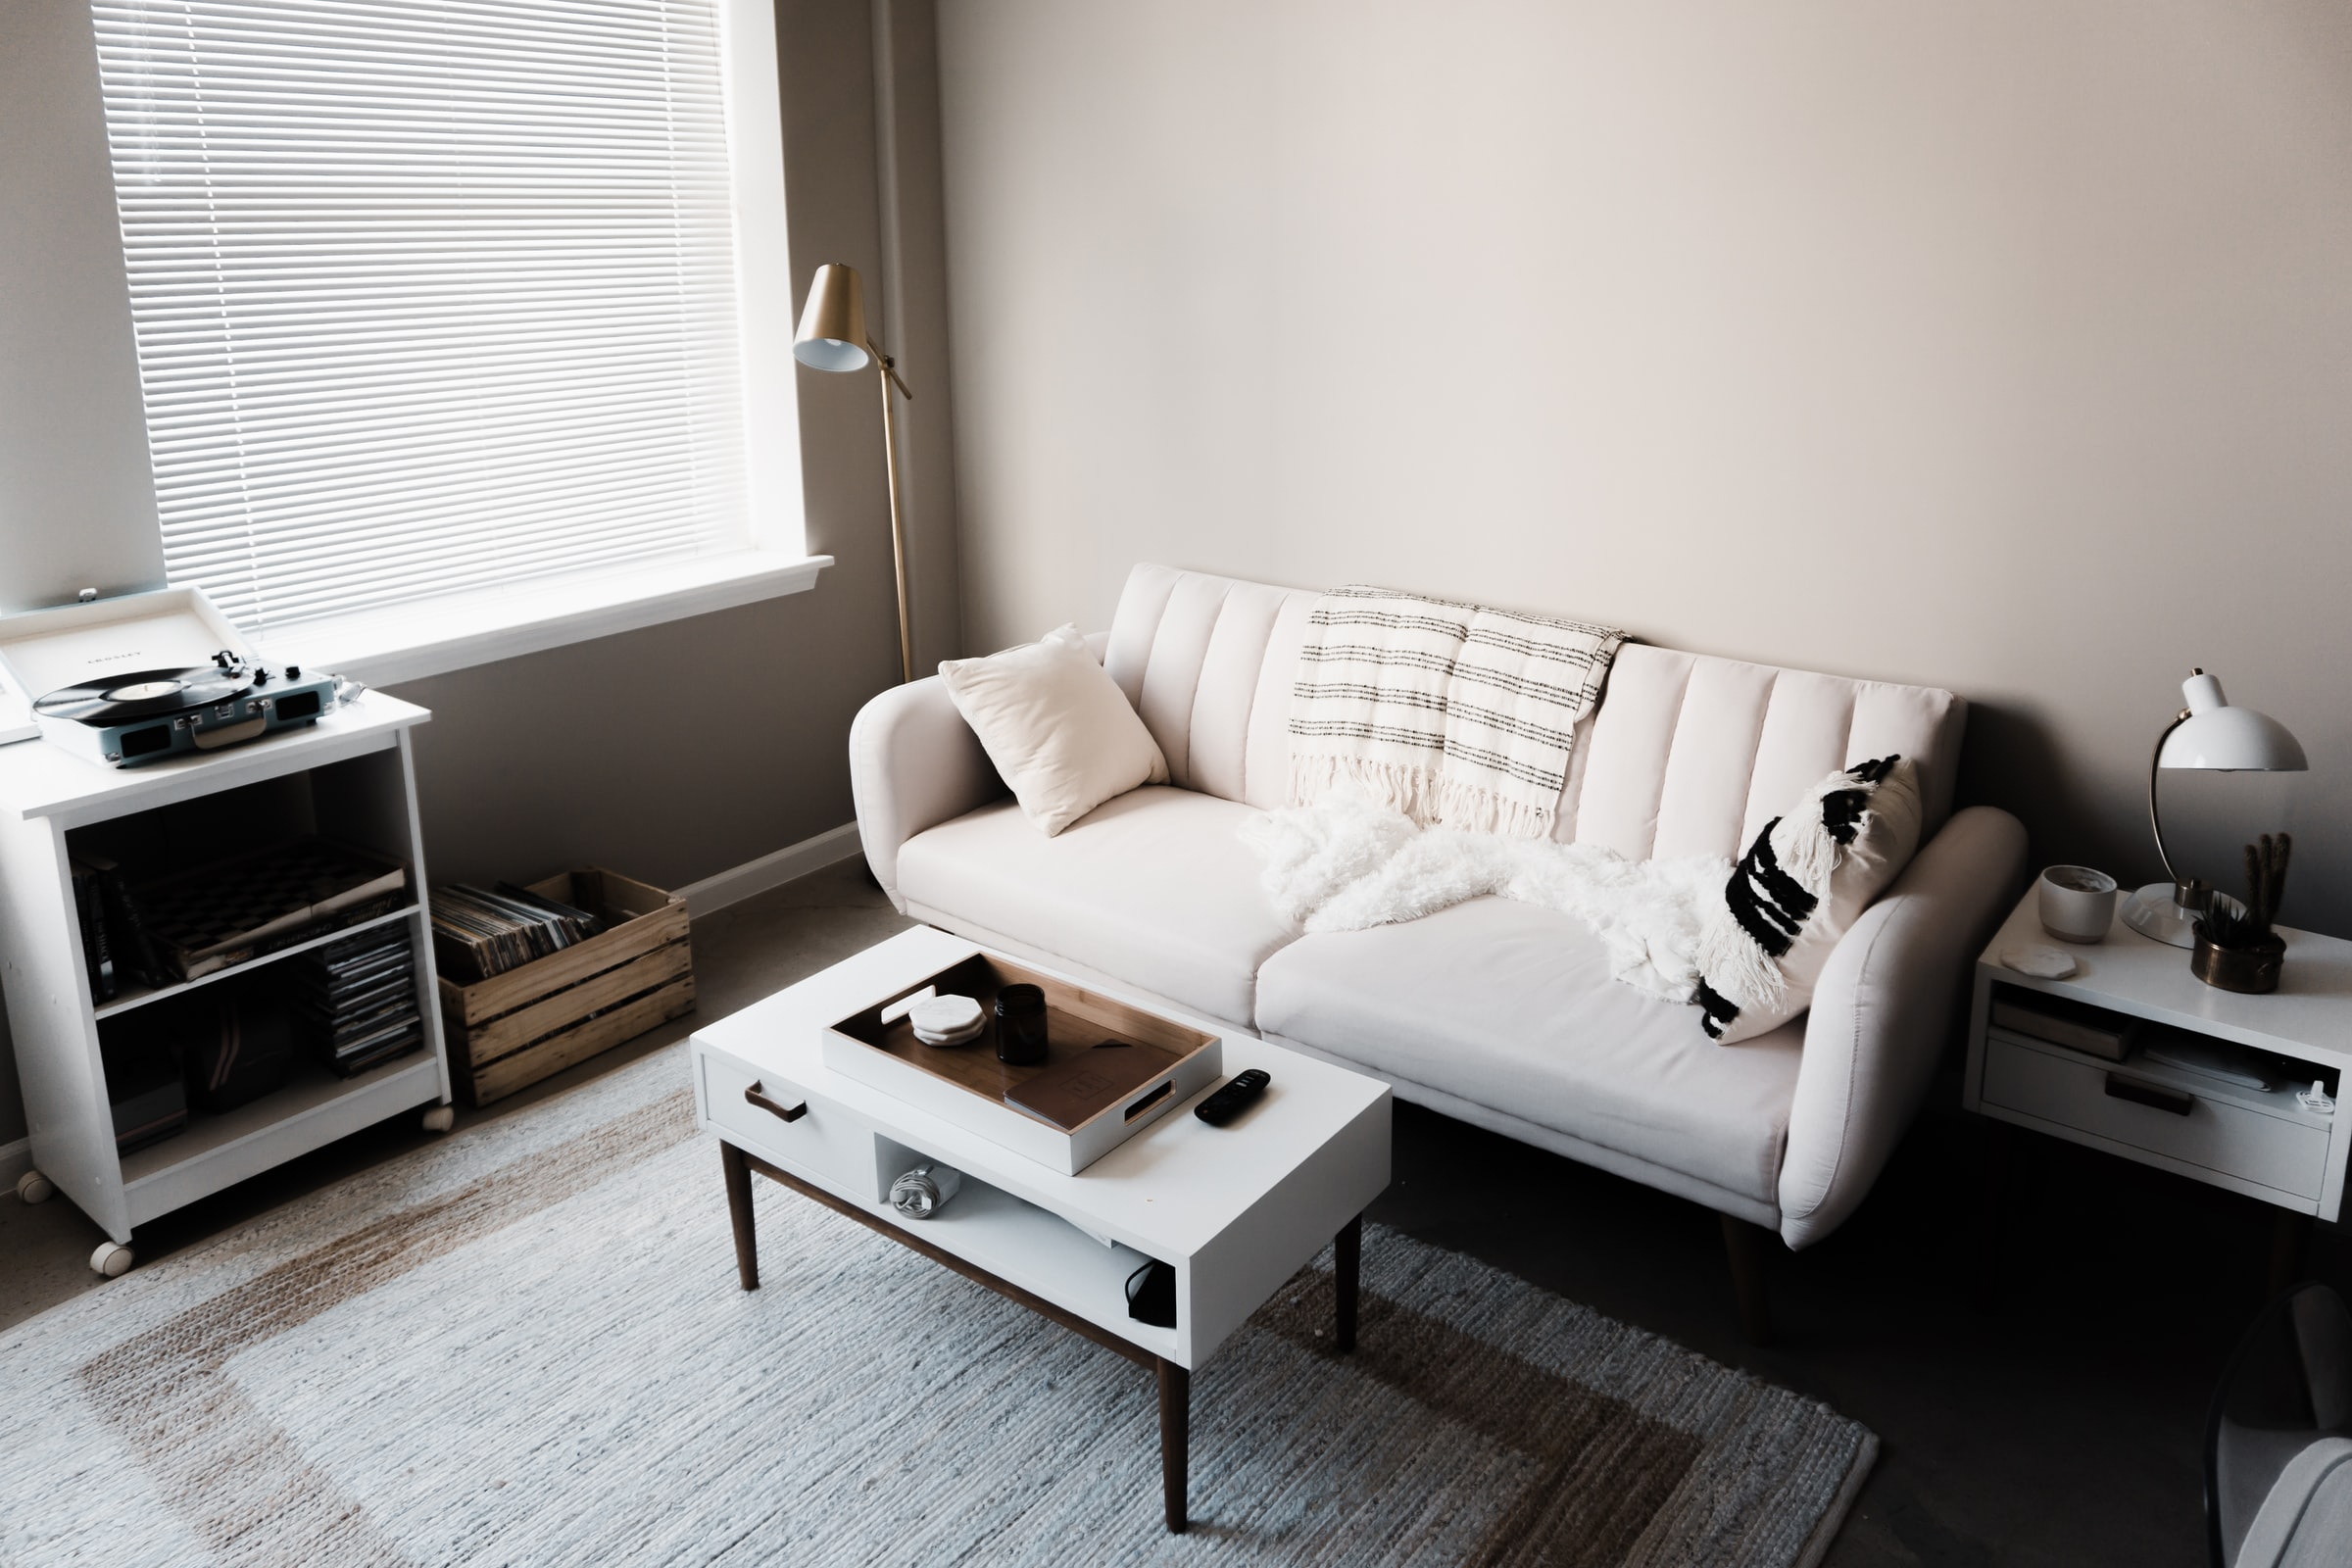 Elevate Your New Bachelor Pad With The Help Of foodpanda And pandamart